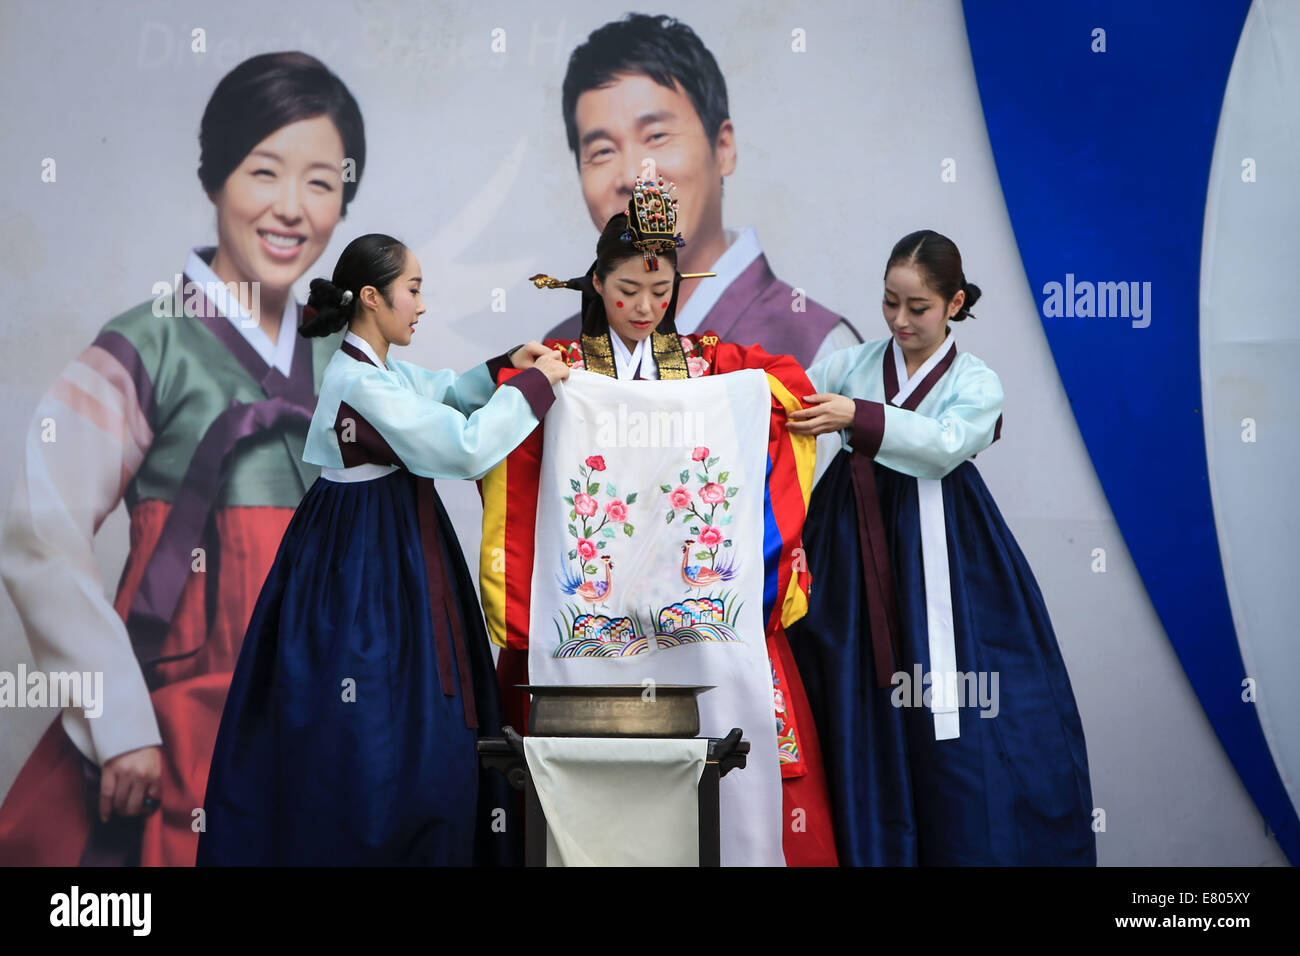 Incheon South Korea 27th Sep 2014 The Bride Wearing Traditional Korean Costumes Attends A Wedding Ceremony At Flag Plaza Of Athletes Village